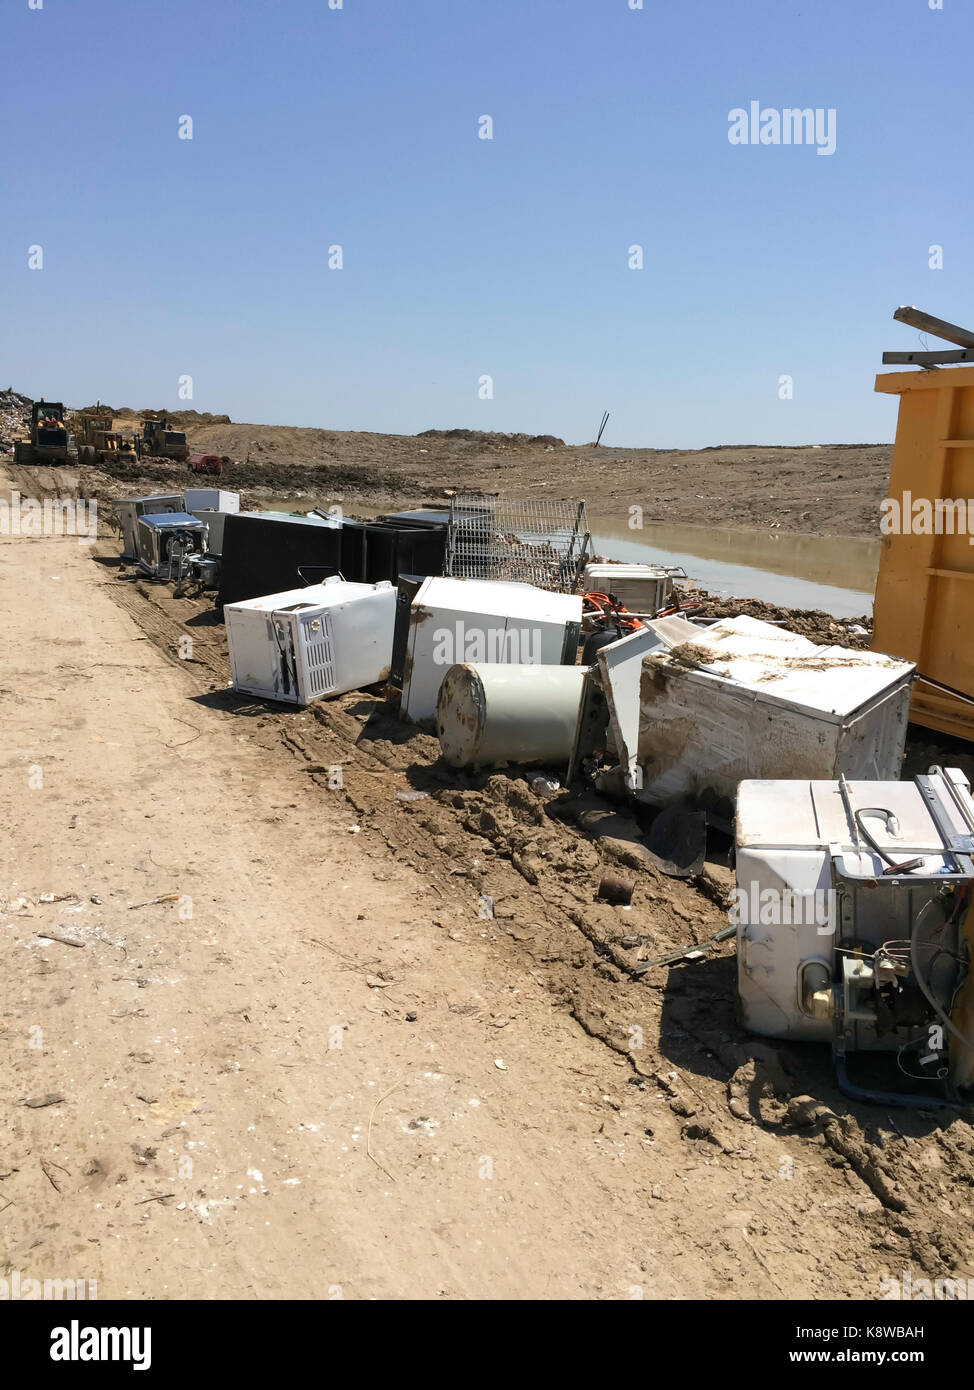 Old Appliances at the Landfill - Stock Image